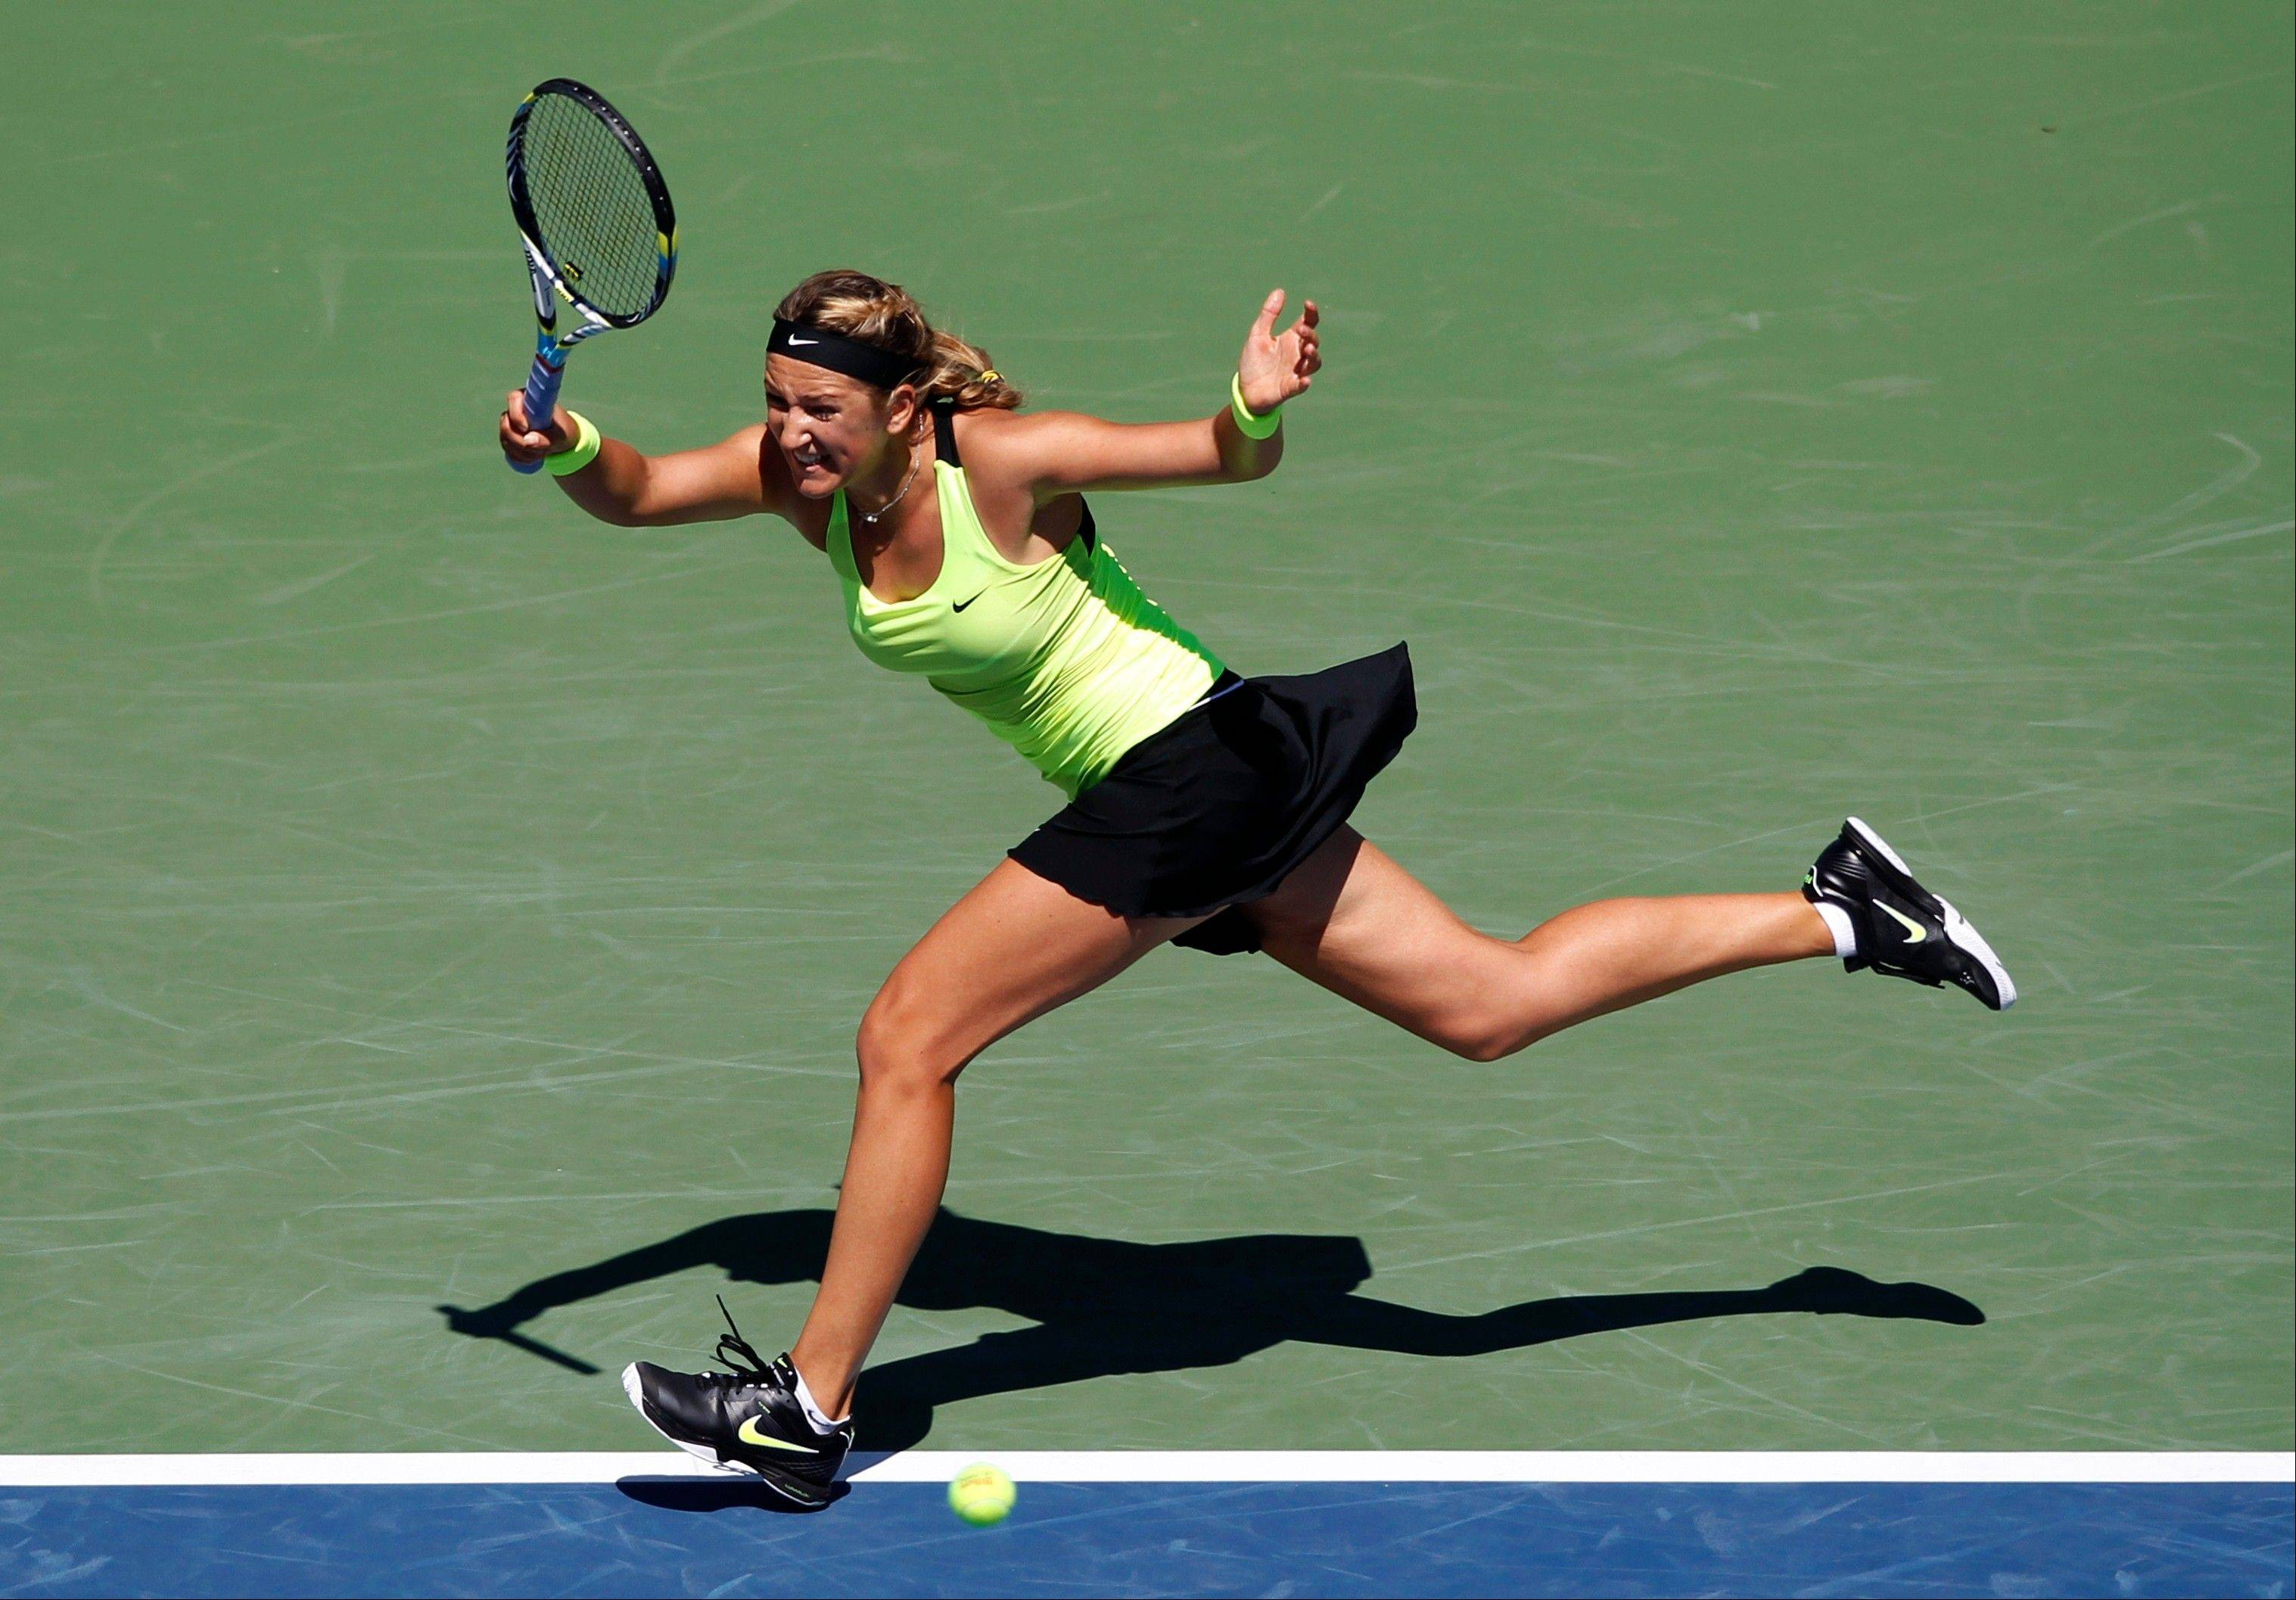 Victoria Azarenka beat qualifier Kirsten Flipkens 6-2, 6-2 in 65 minutes in the second round Wednesday.